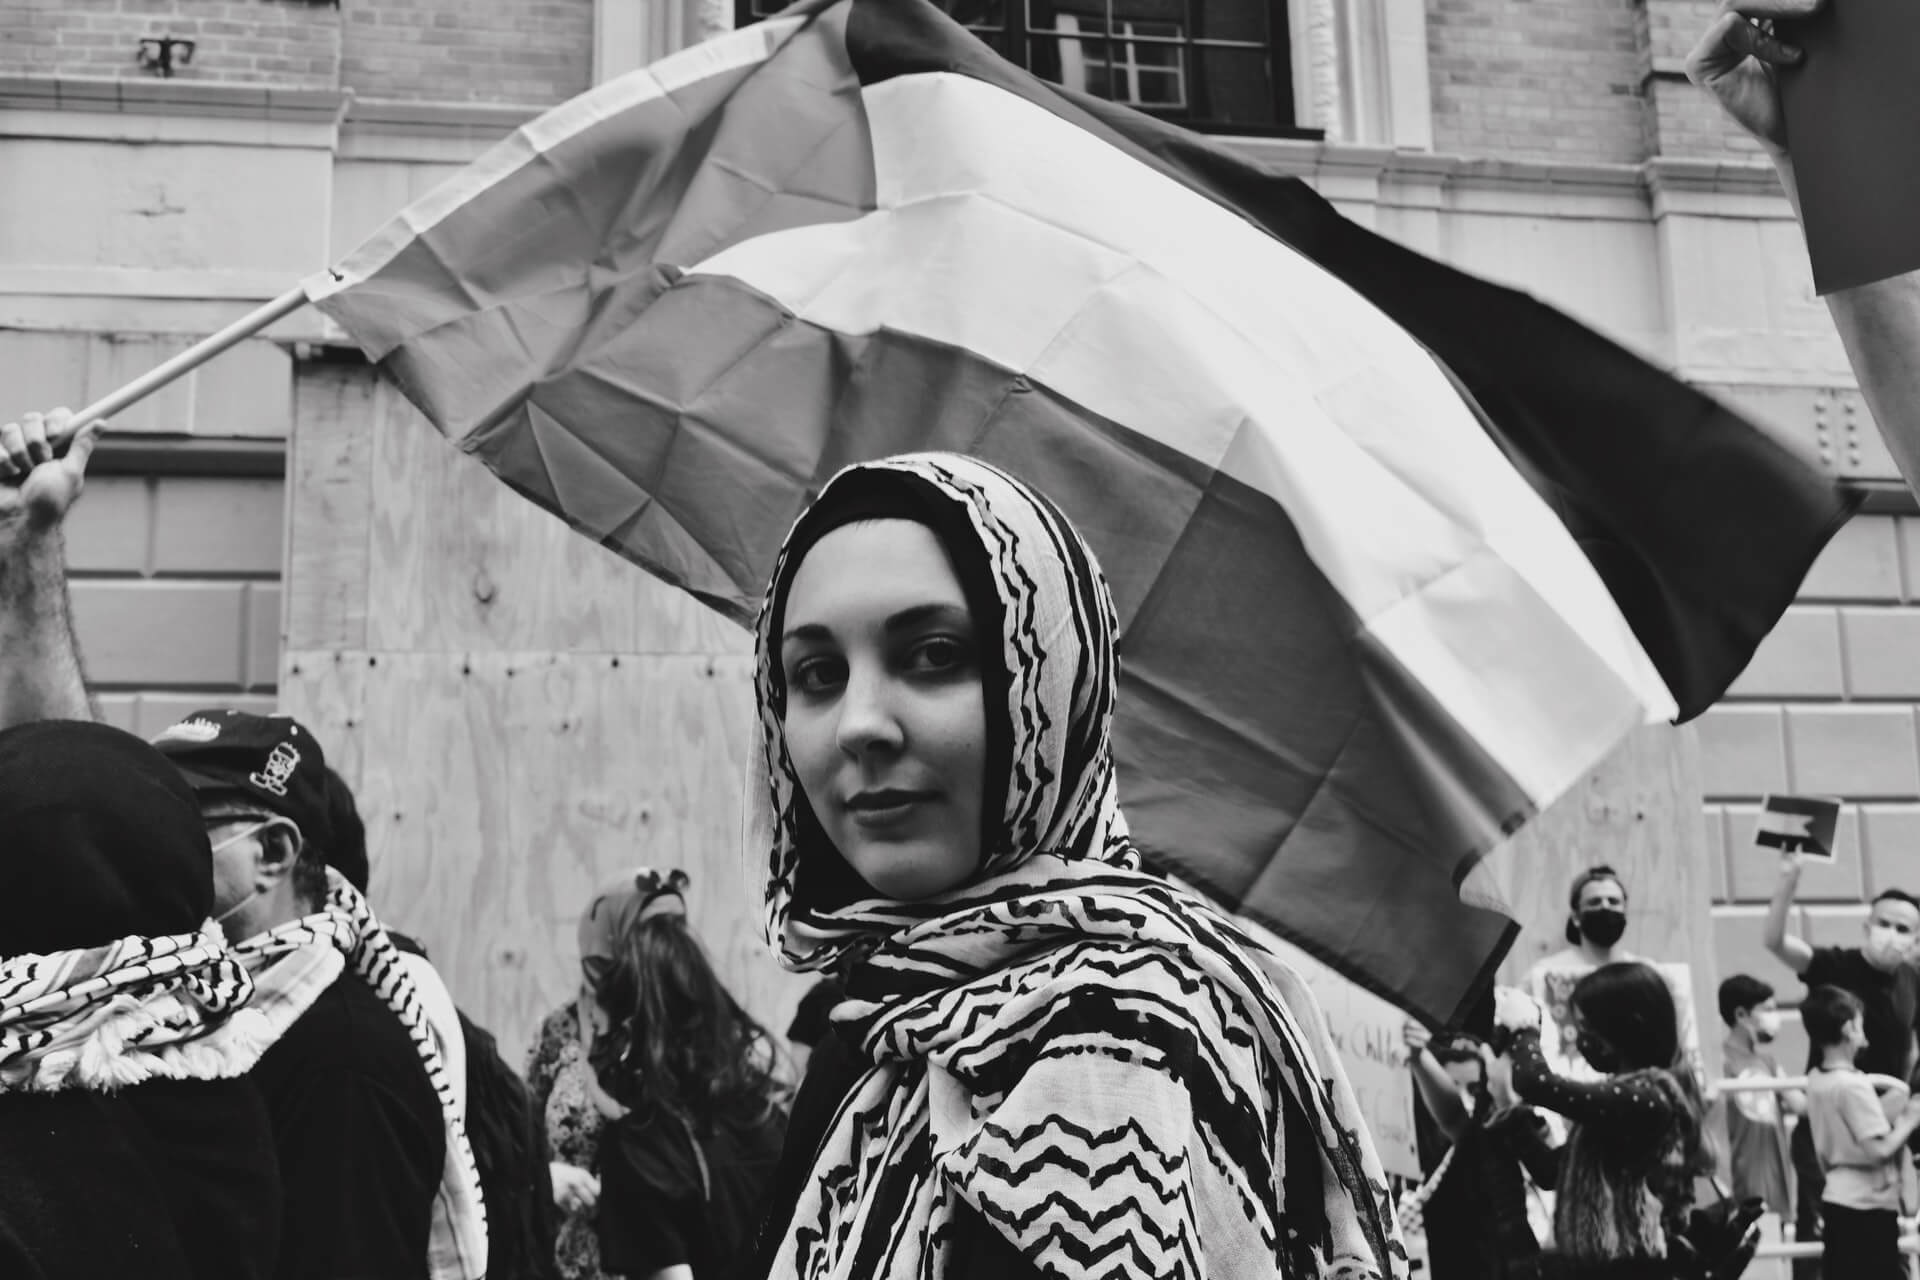 A Palestinian woman with a flag behind her at a protest in Palestine